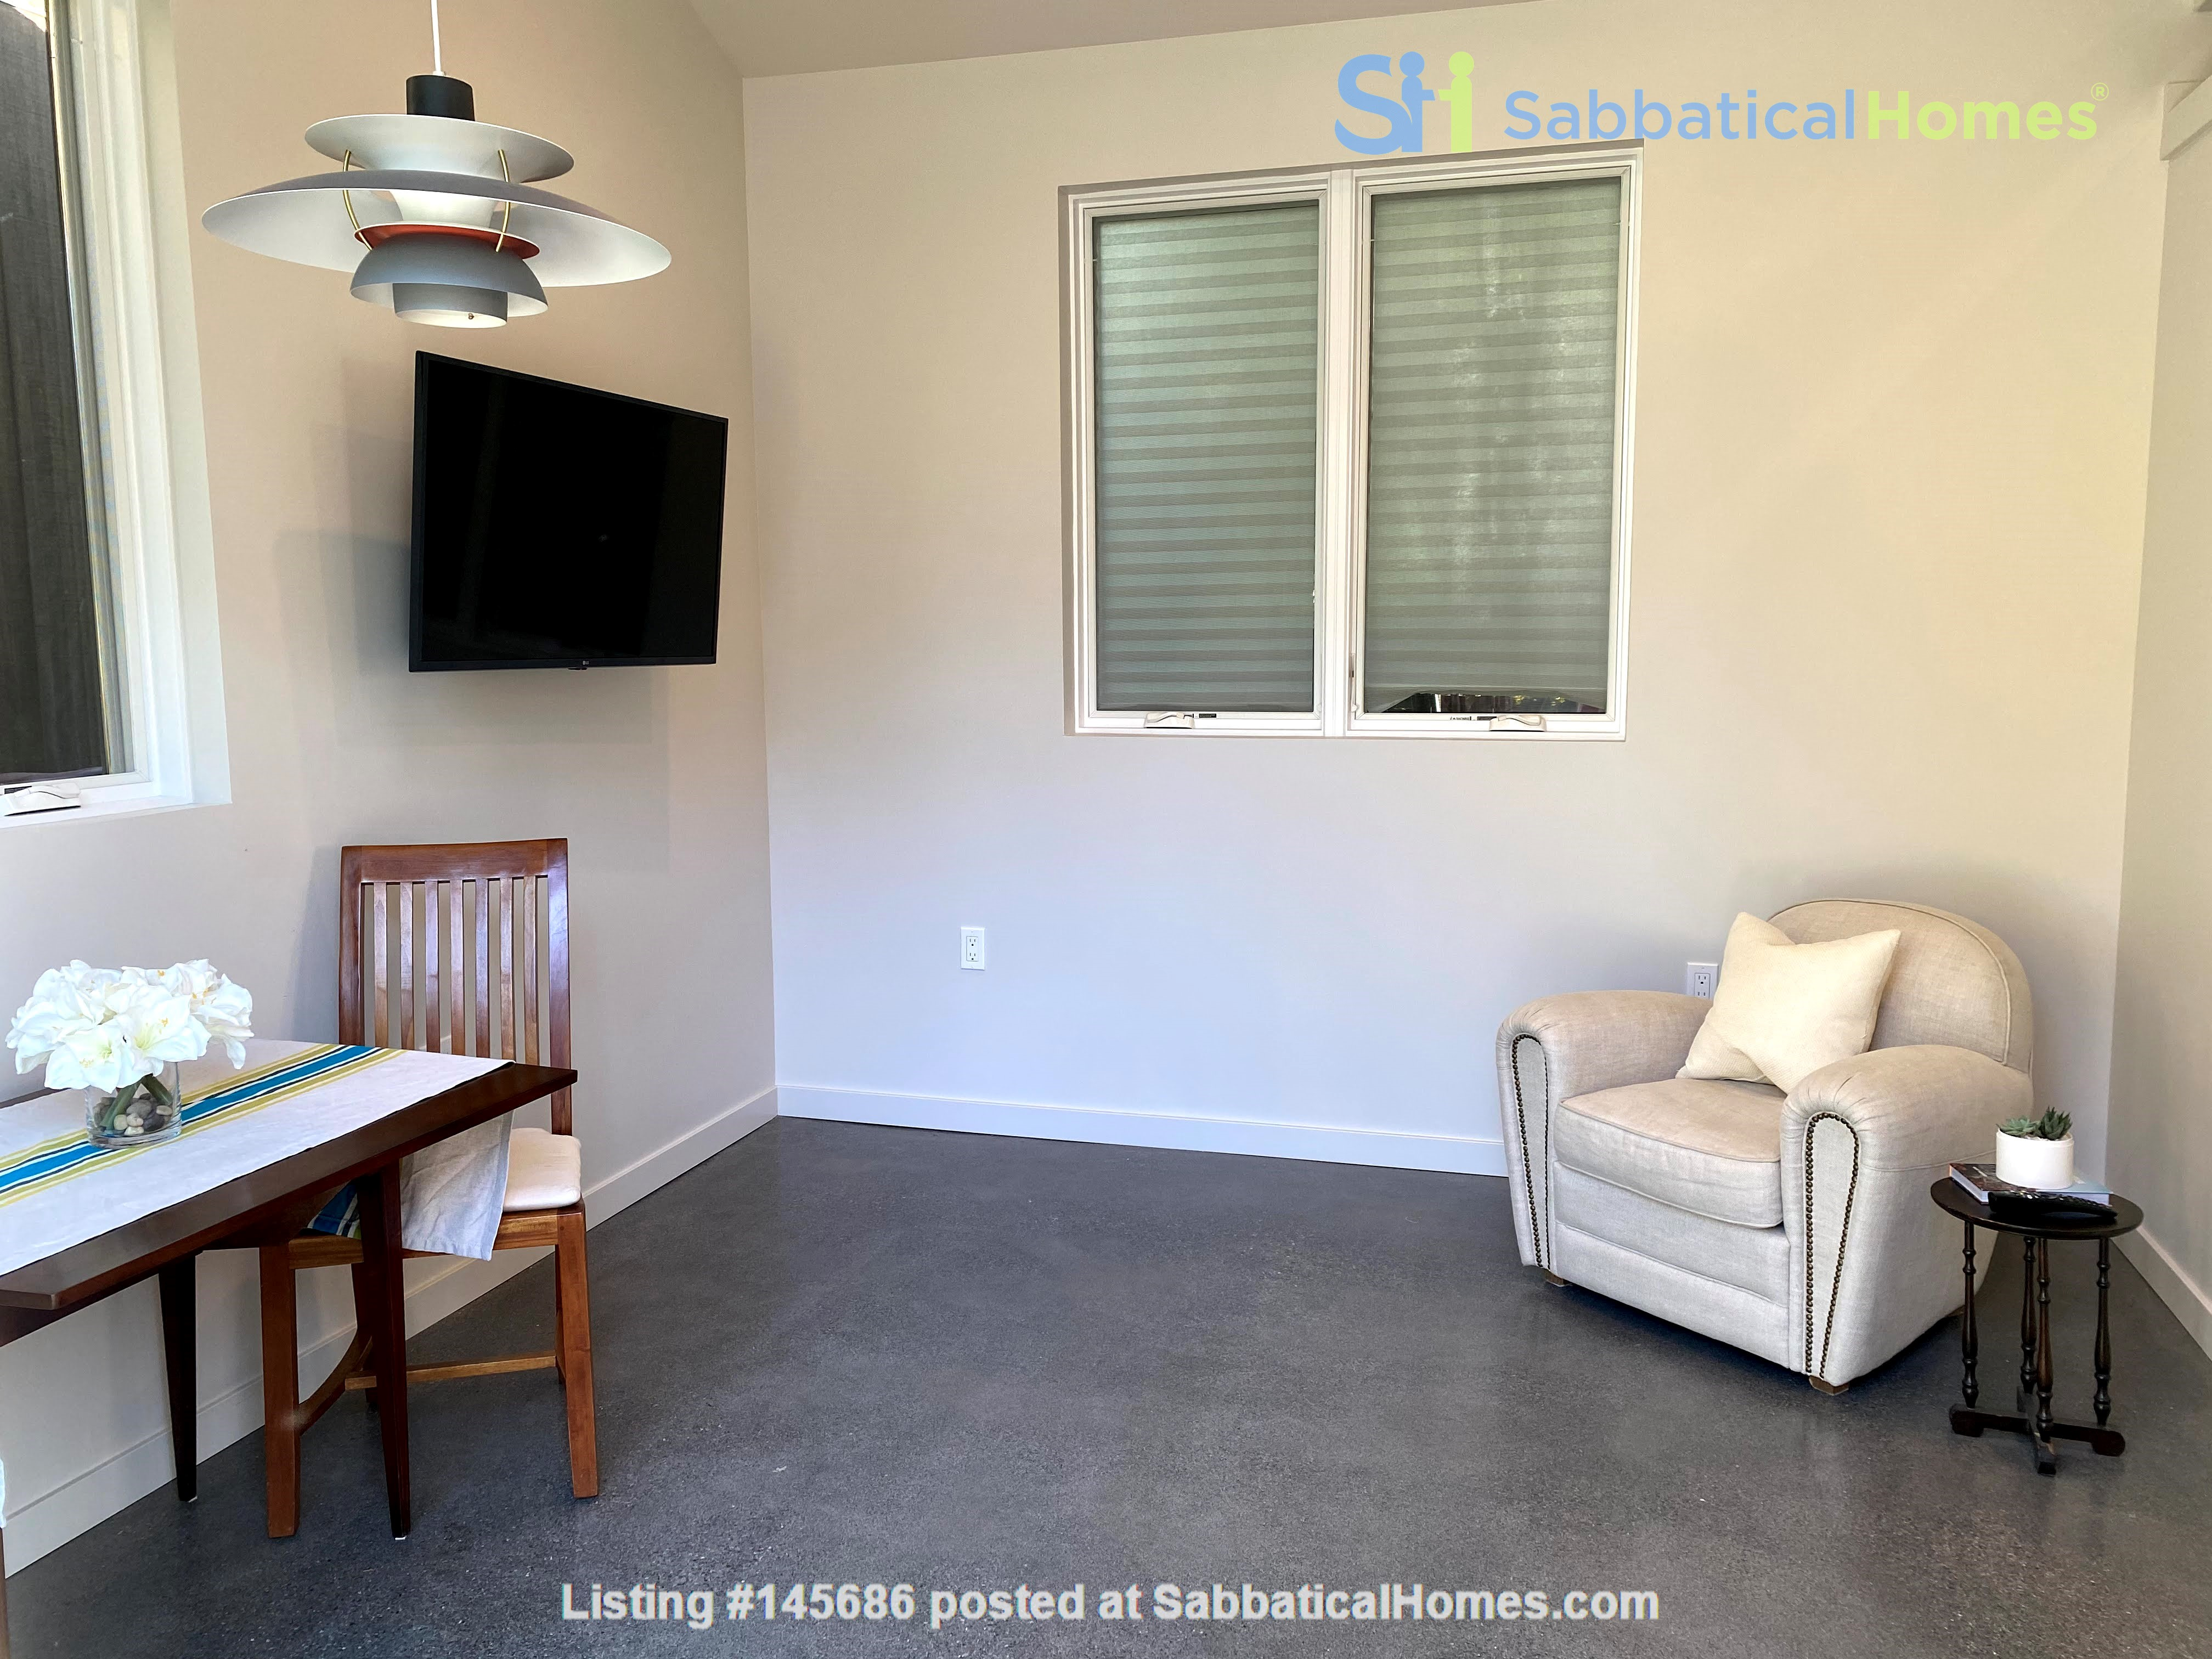 Newly Built Cosy and Modern South Berkeley Backyard Cottage - 1 Bed/1 Bath Home Rental in Berkeley 6